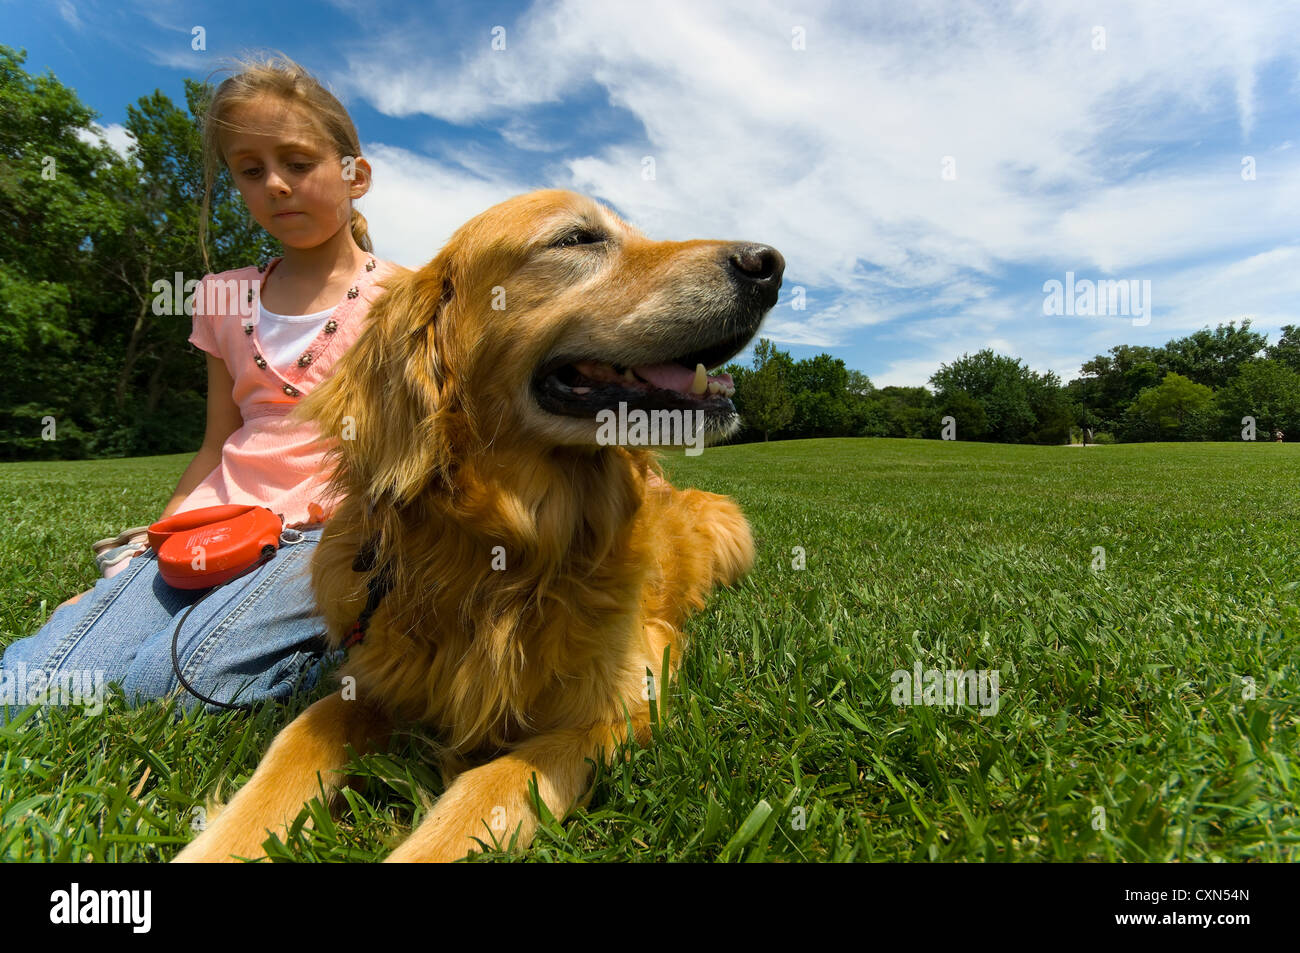 Young girl at park with pet Dog Stock Photo